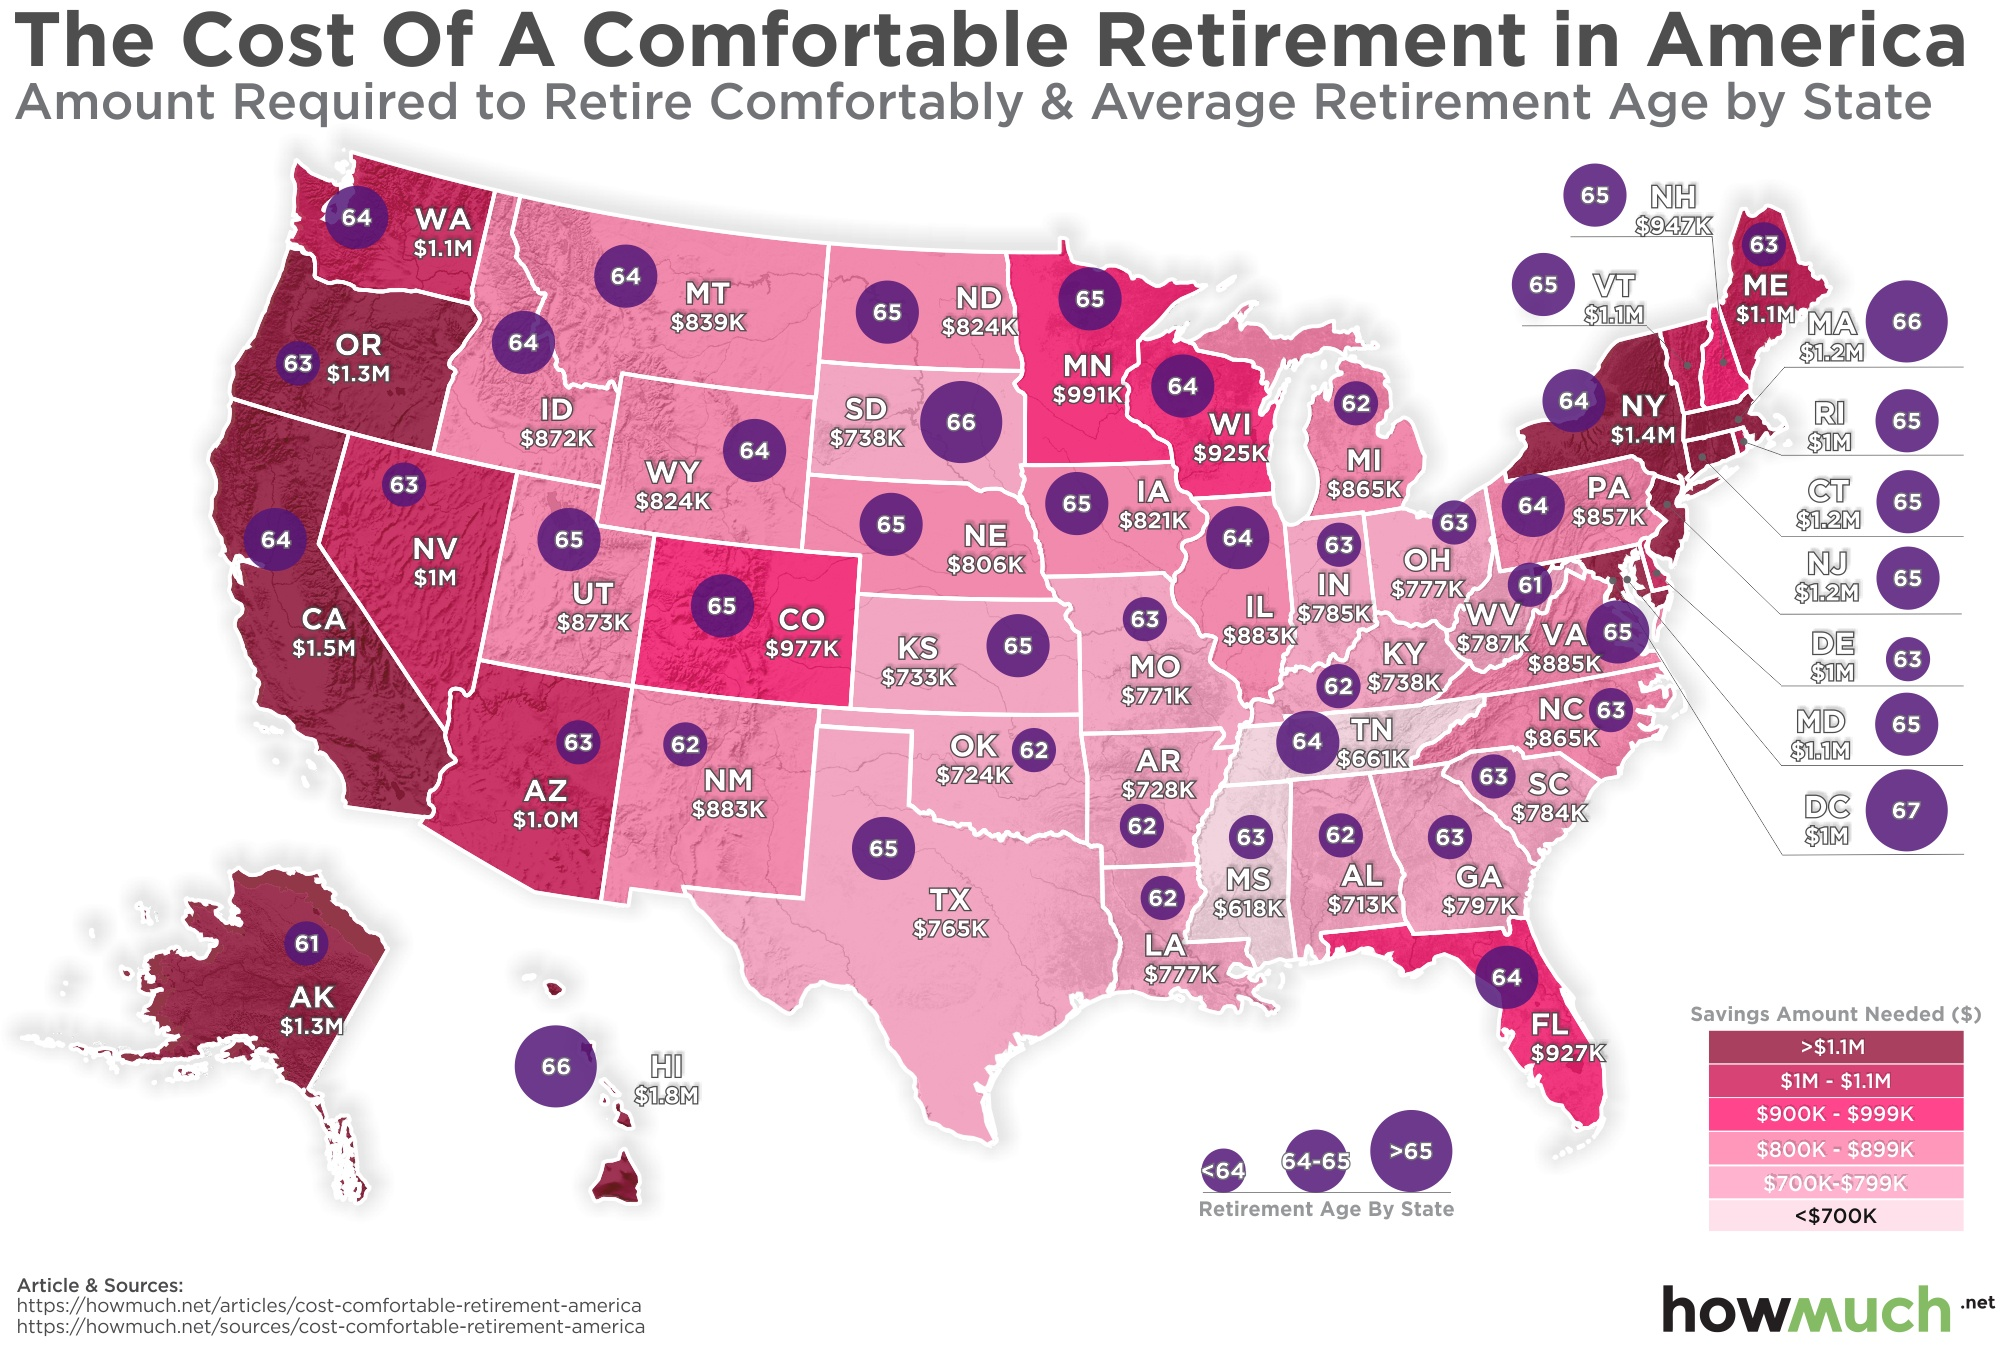 how much money do you need to retire comfortably